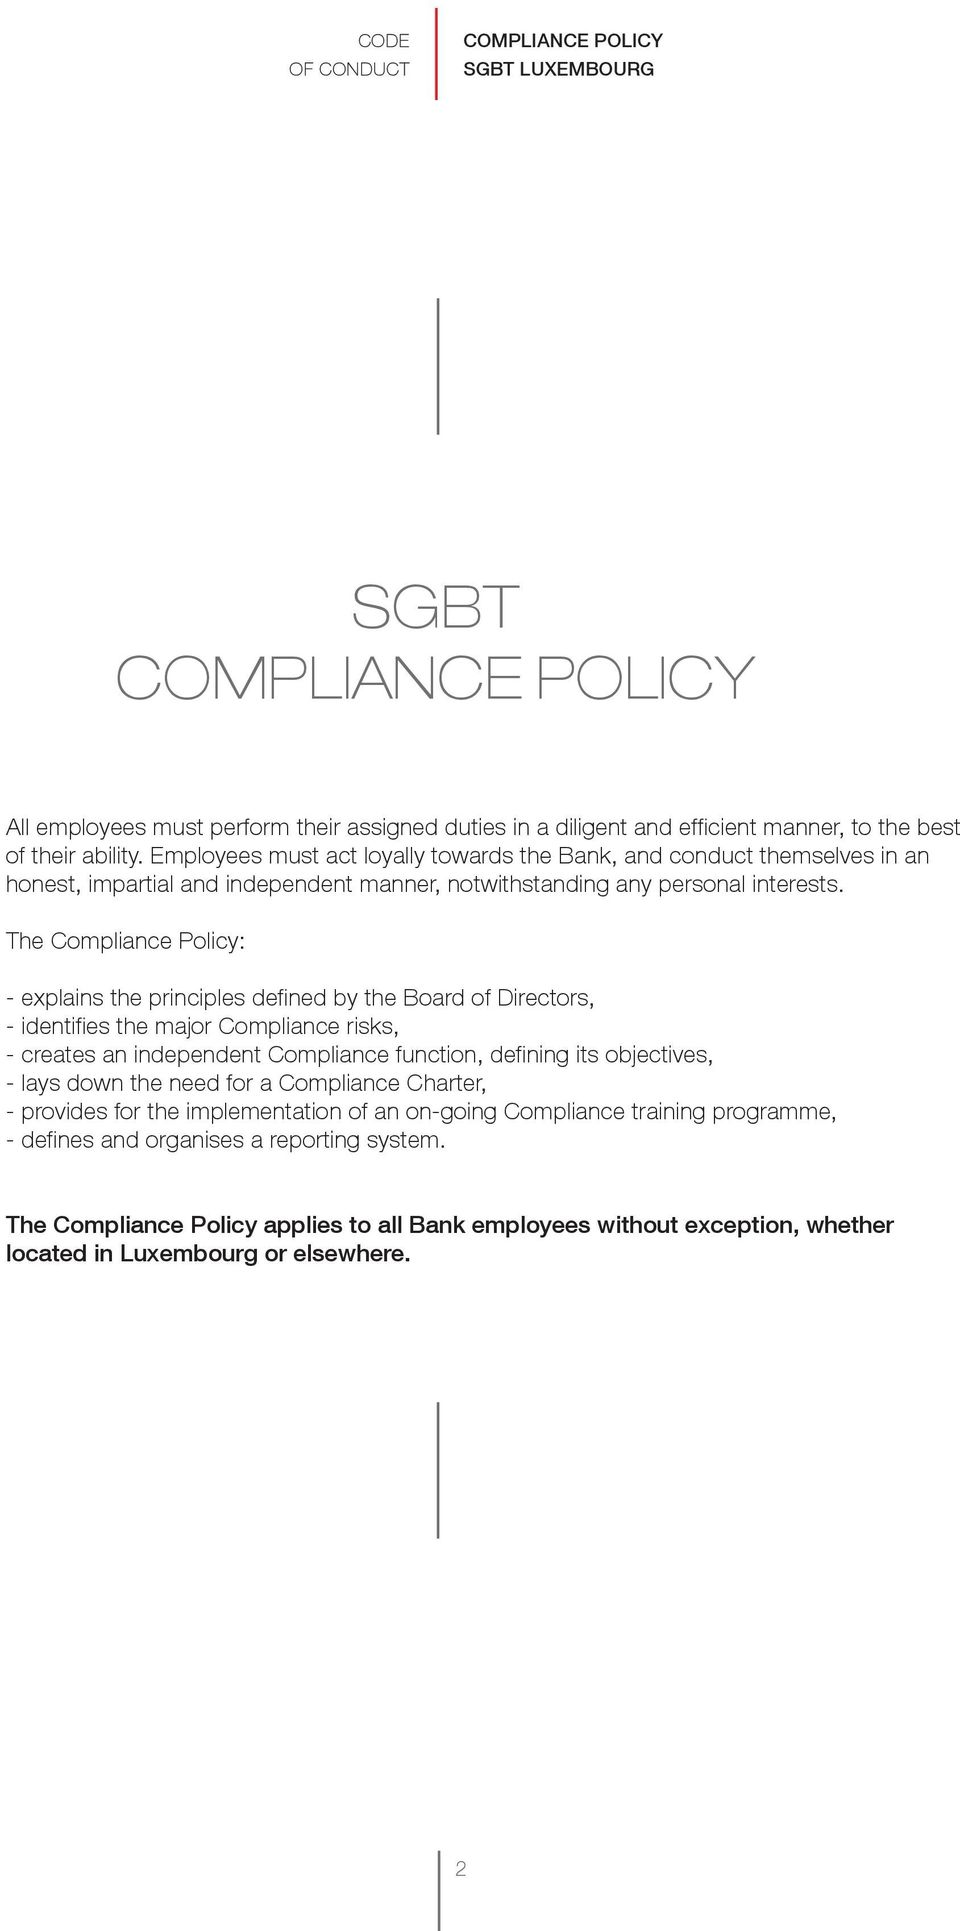 The Compliance Policy: - explains the principles defined by the Board of Directors, - identifies the major Compliance risks, - creates an independent Compliance function, defining its